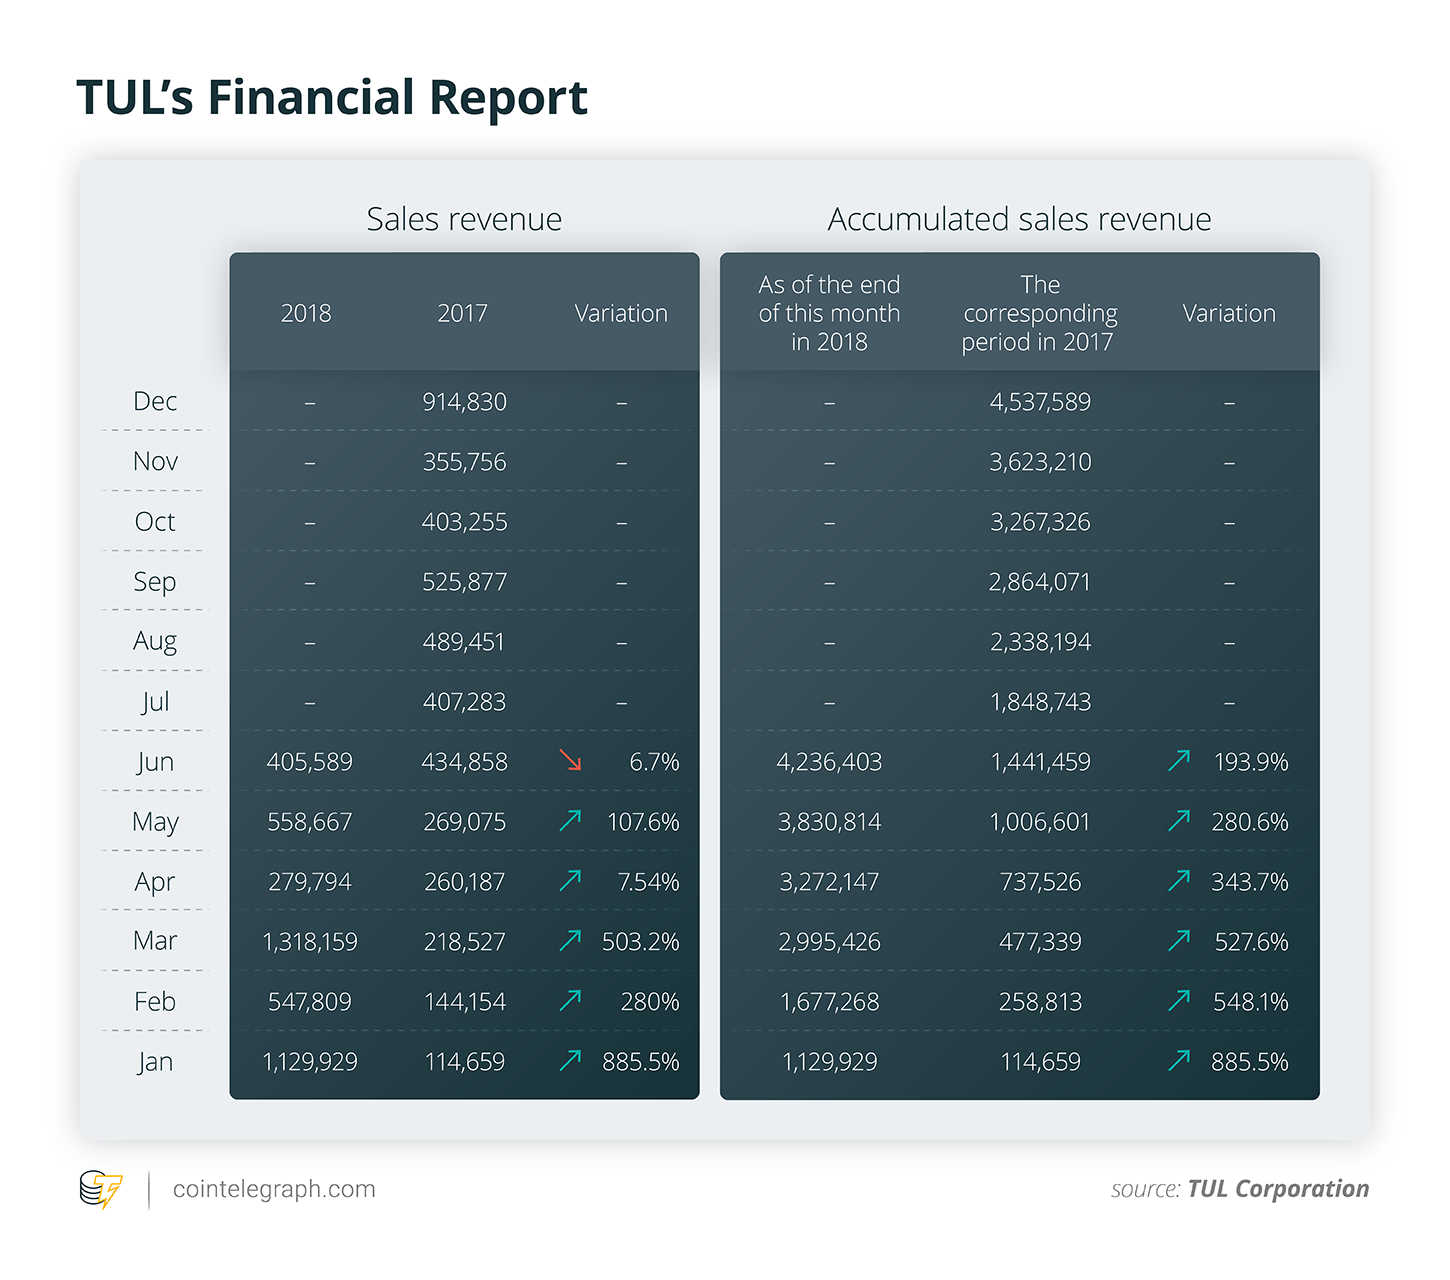 TUL's Financial Report